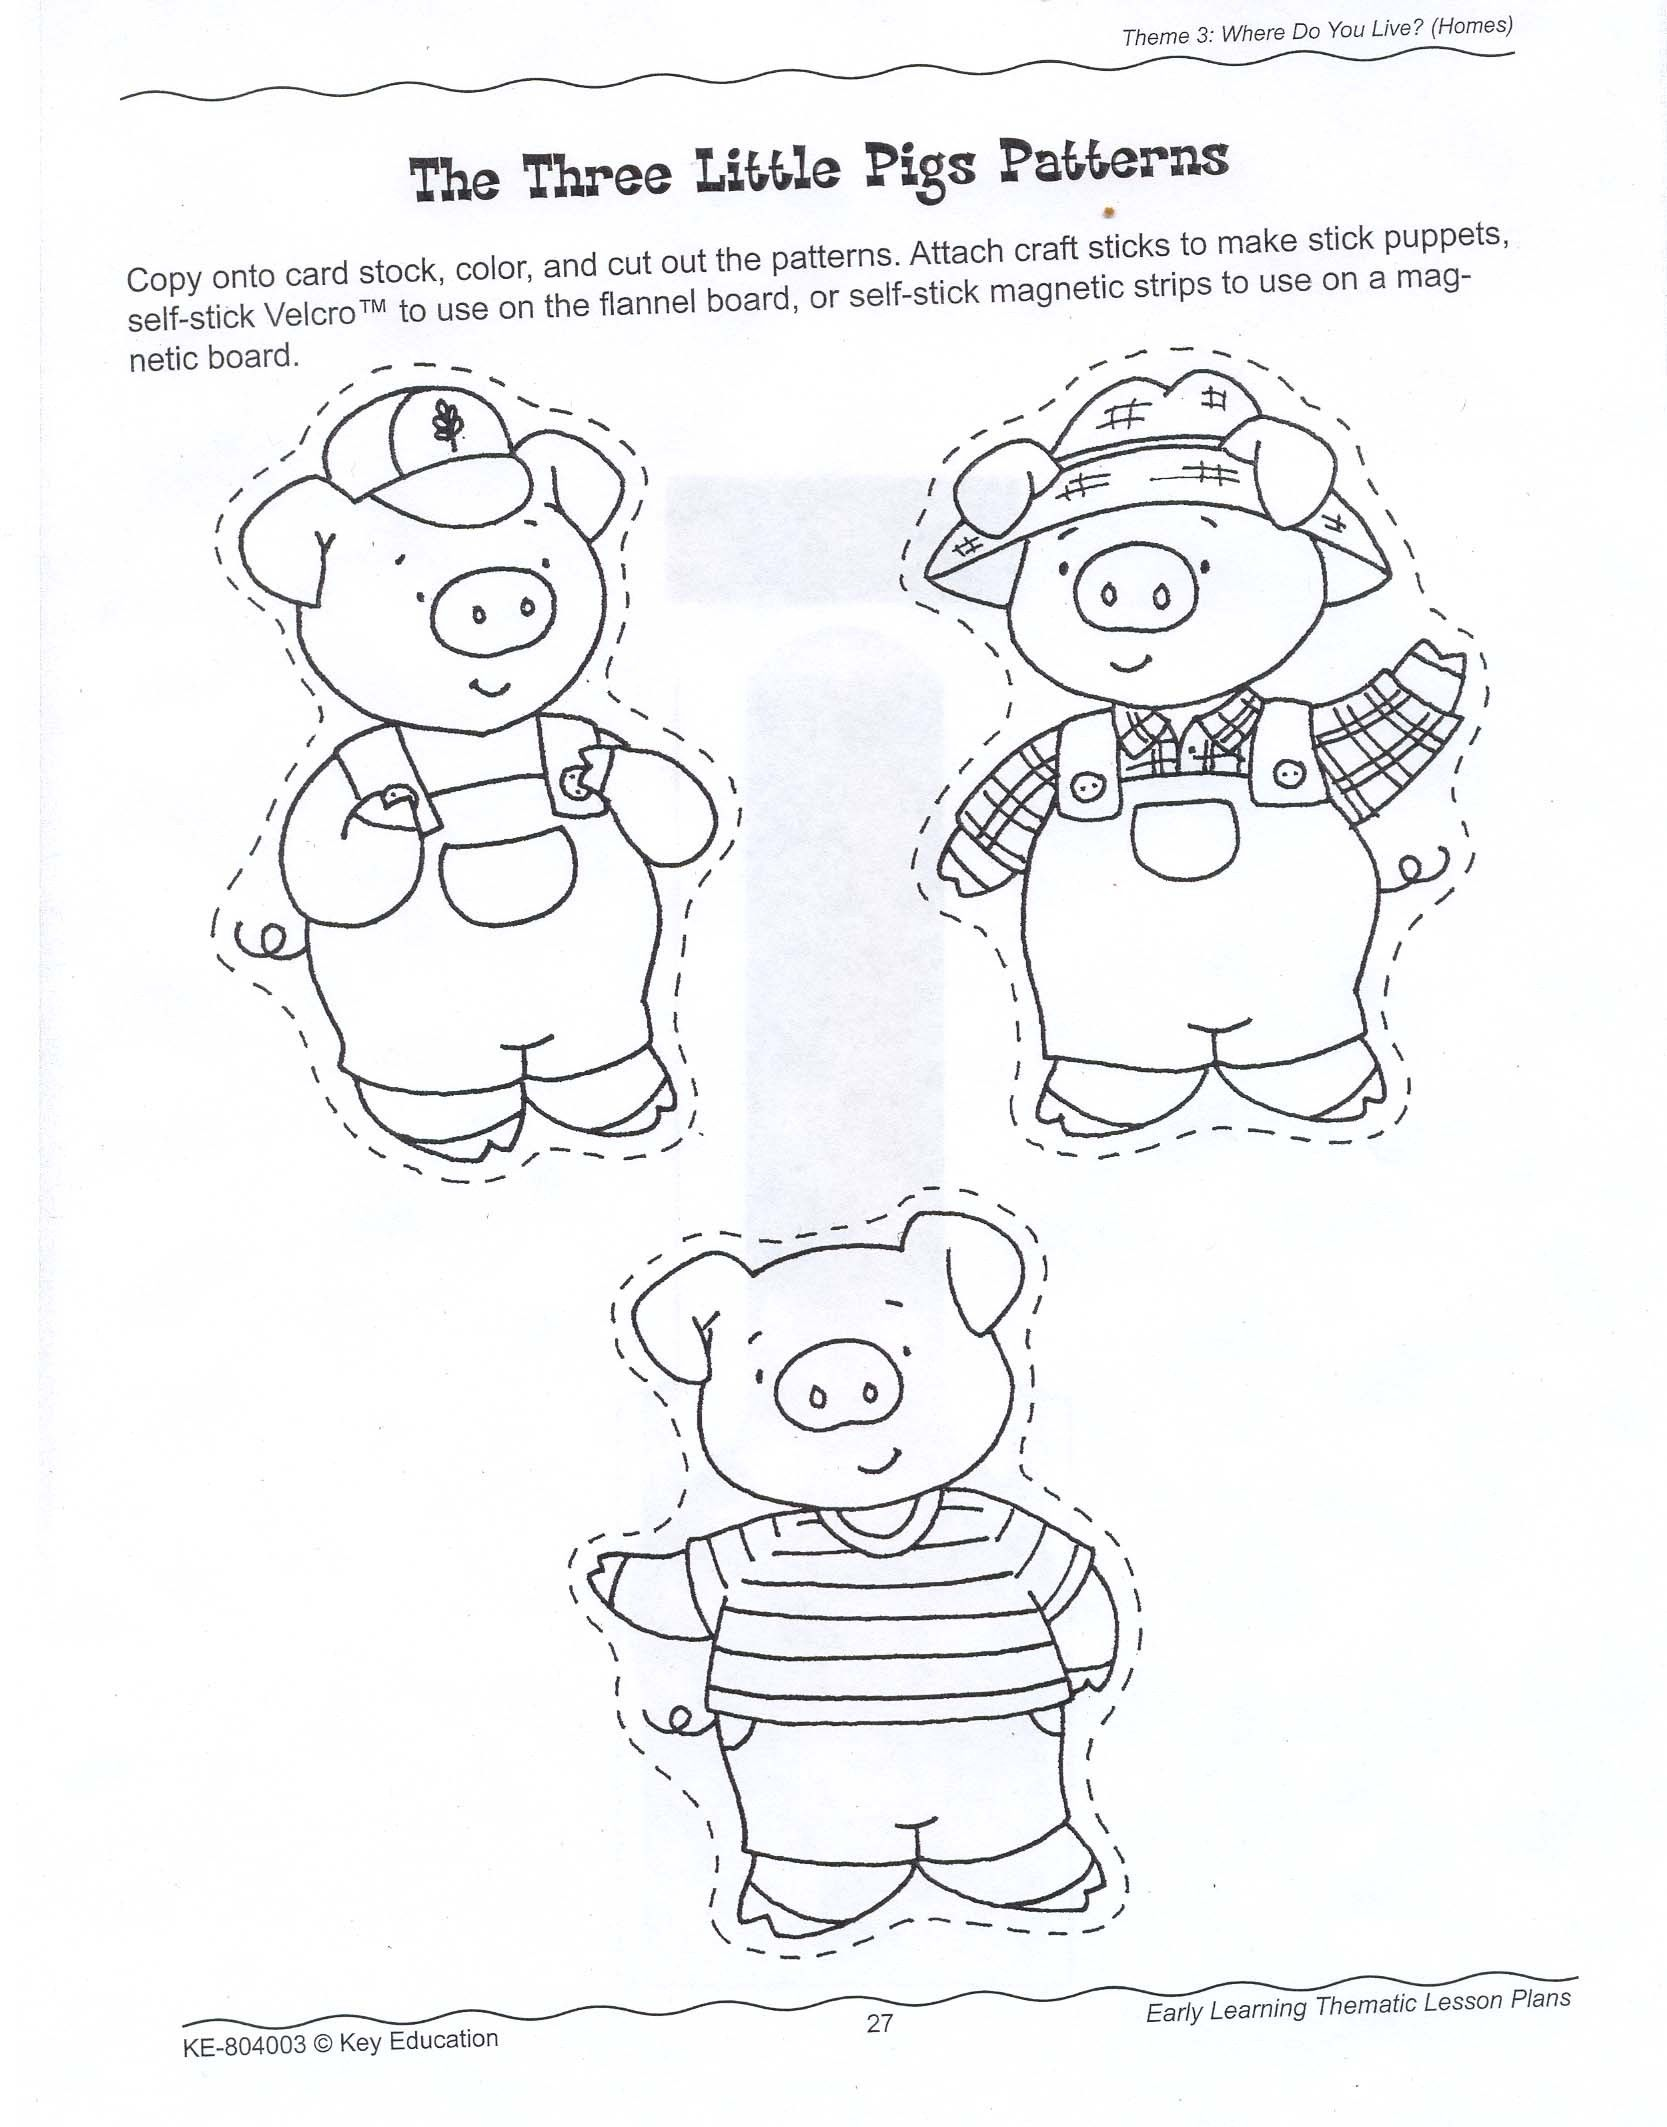 The Three Little Pigs Story Coloring Pages - Coloring Home